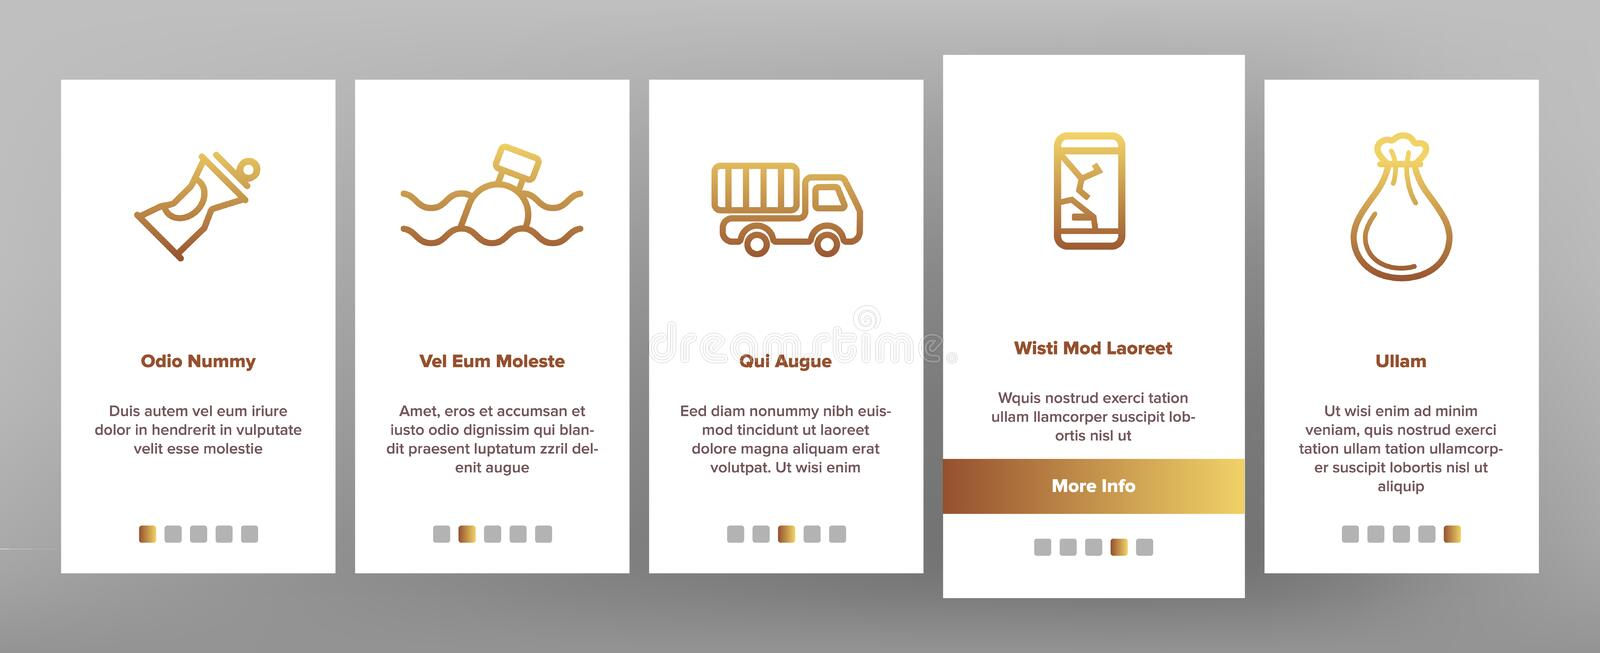 Garbage Recycling Linear Vector Onboarding royalty free illustration